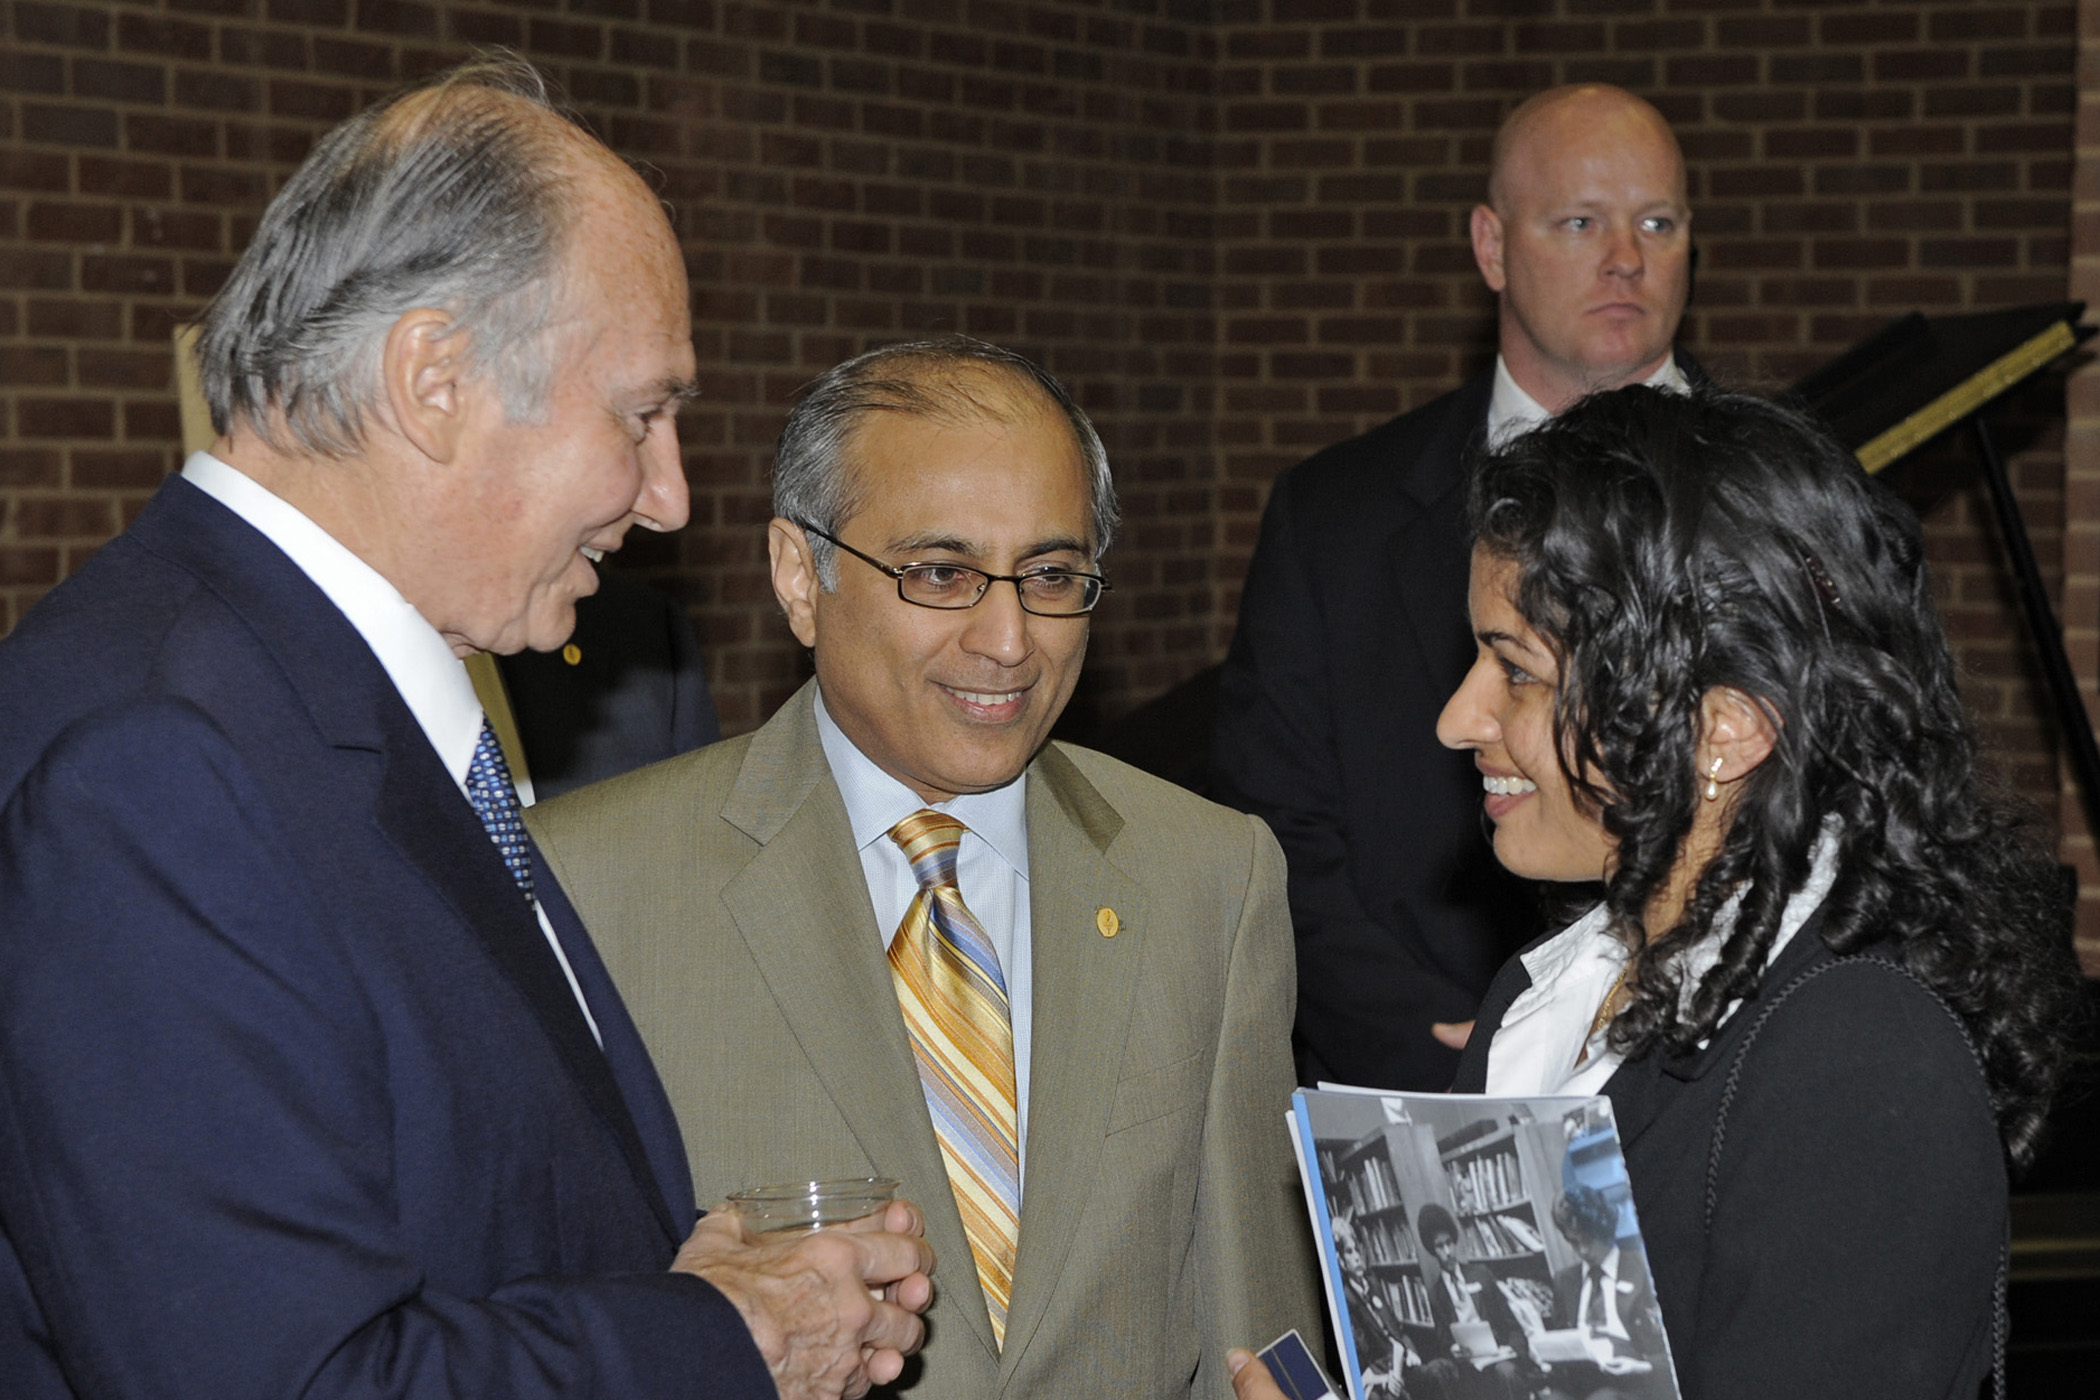 Mawlana Hazar Imam in conversation with an Ismaili involved in the field of Education at the reception following the IBO meeting. Salim Bhatia, Director of the Aga Khan Academies Programme looks on. Photo: Gary Otte